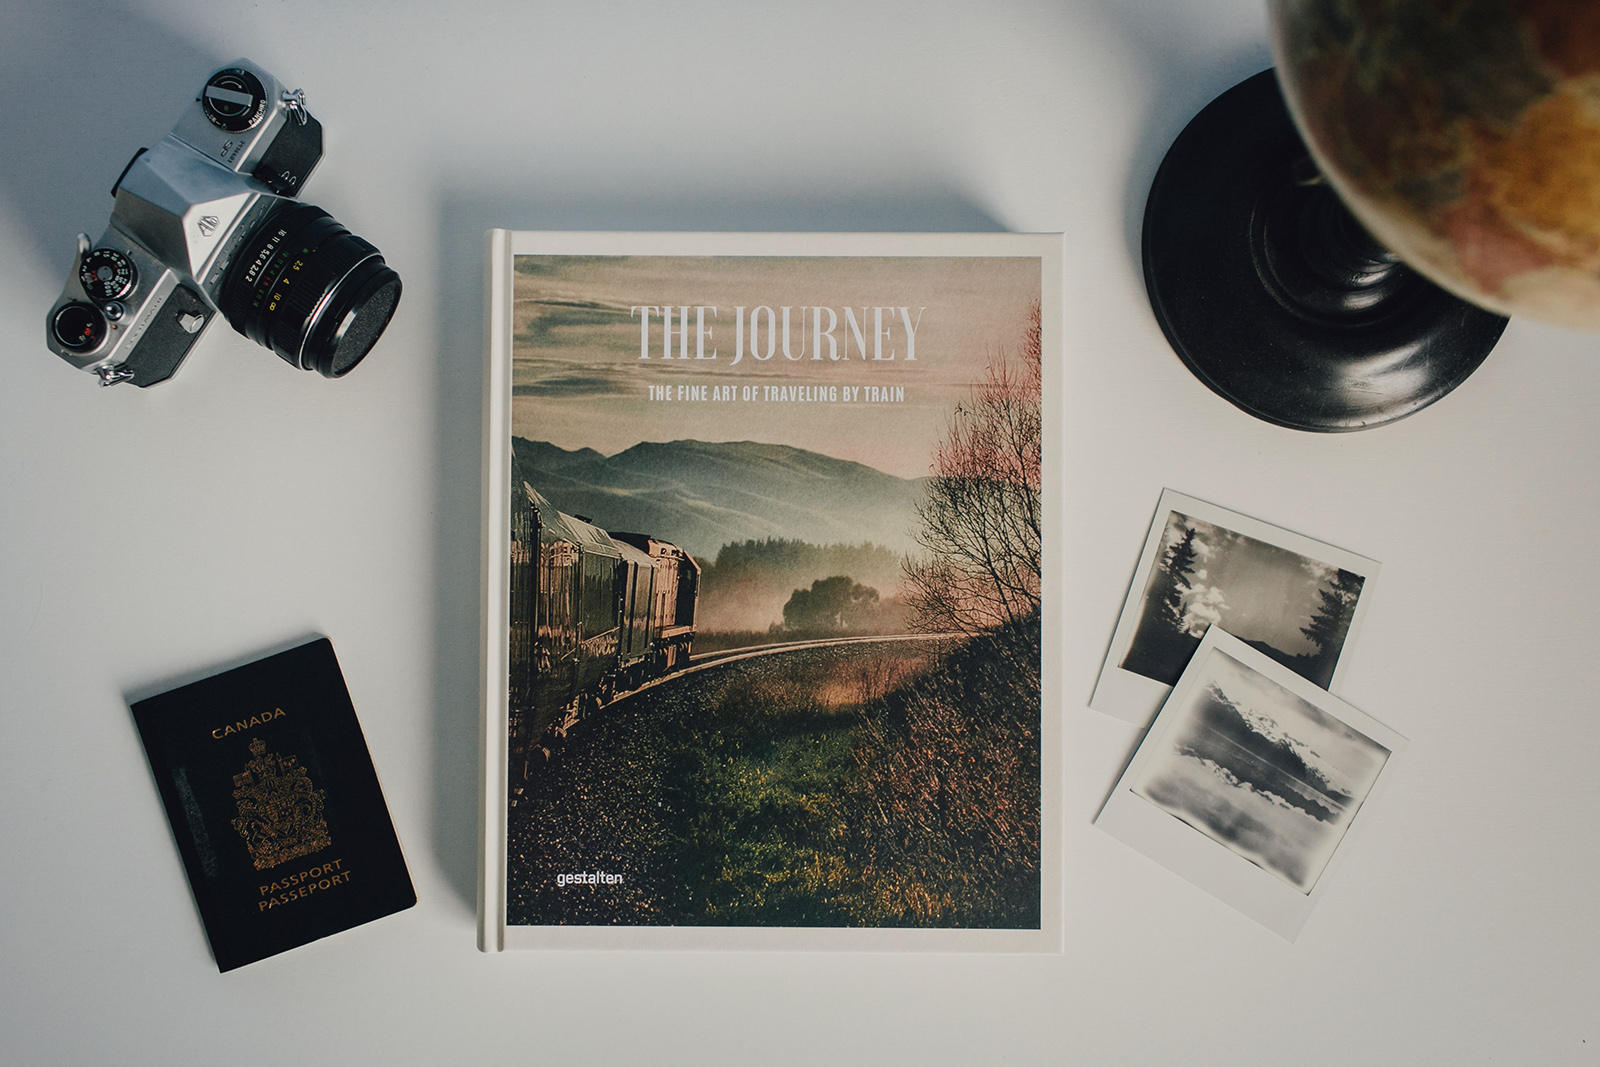 the-journey-gestalten-tear-sheet-0194.jpg